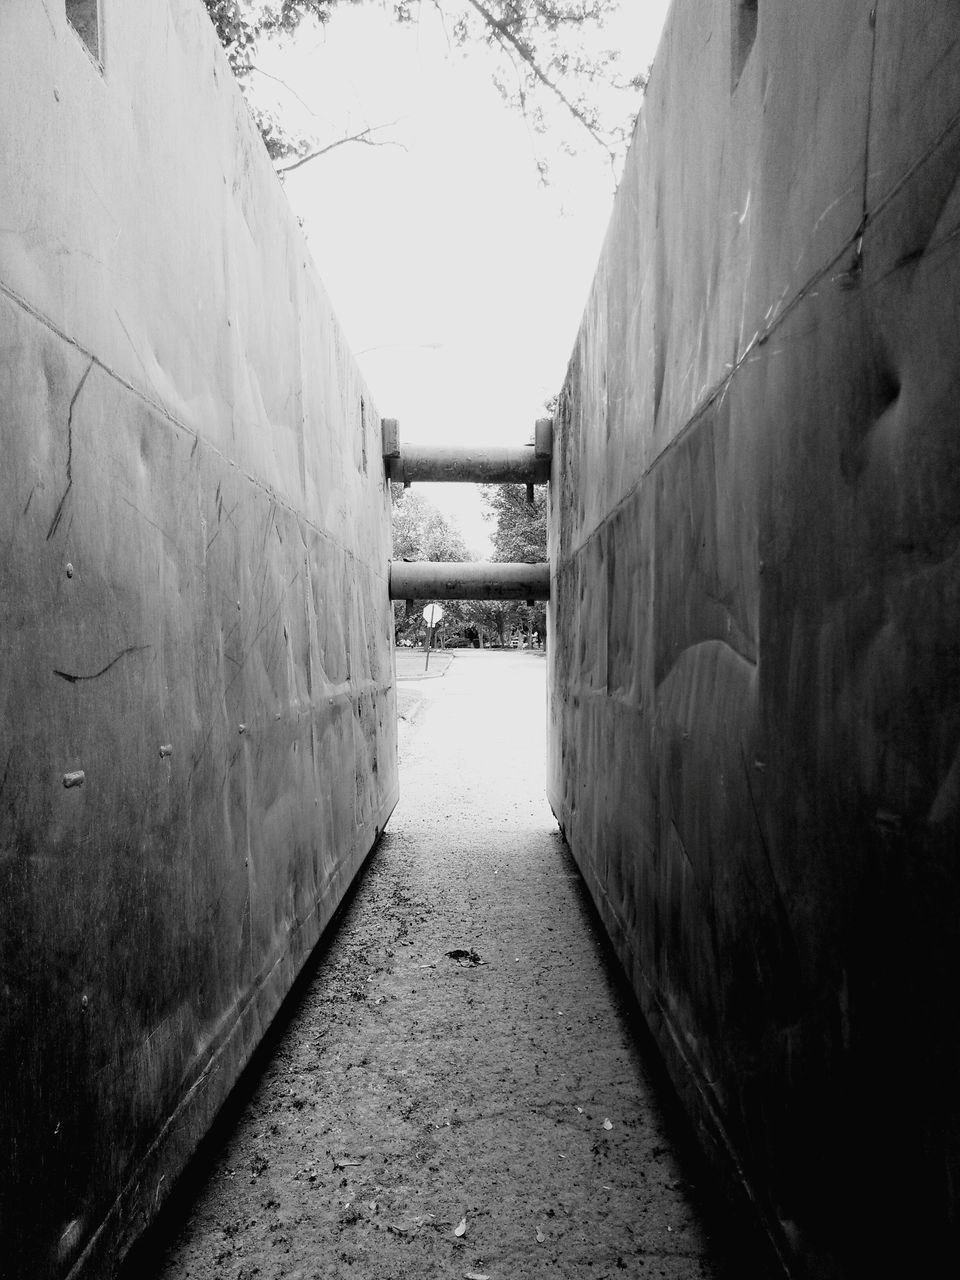 the way forward, diminishing perspective, built structure, no people, day, alley, architecture, outdoors, walkway